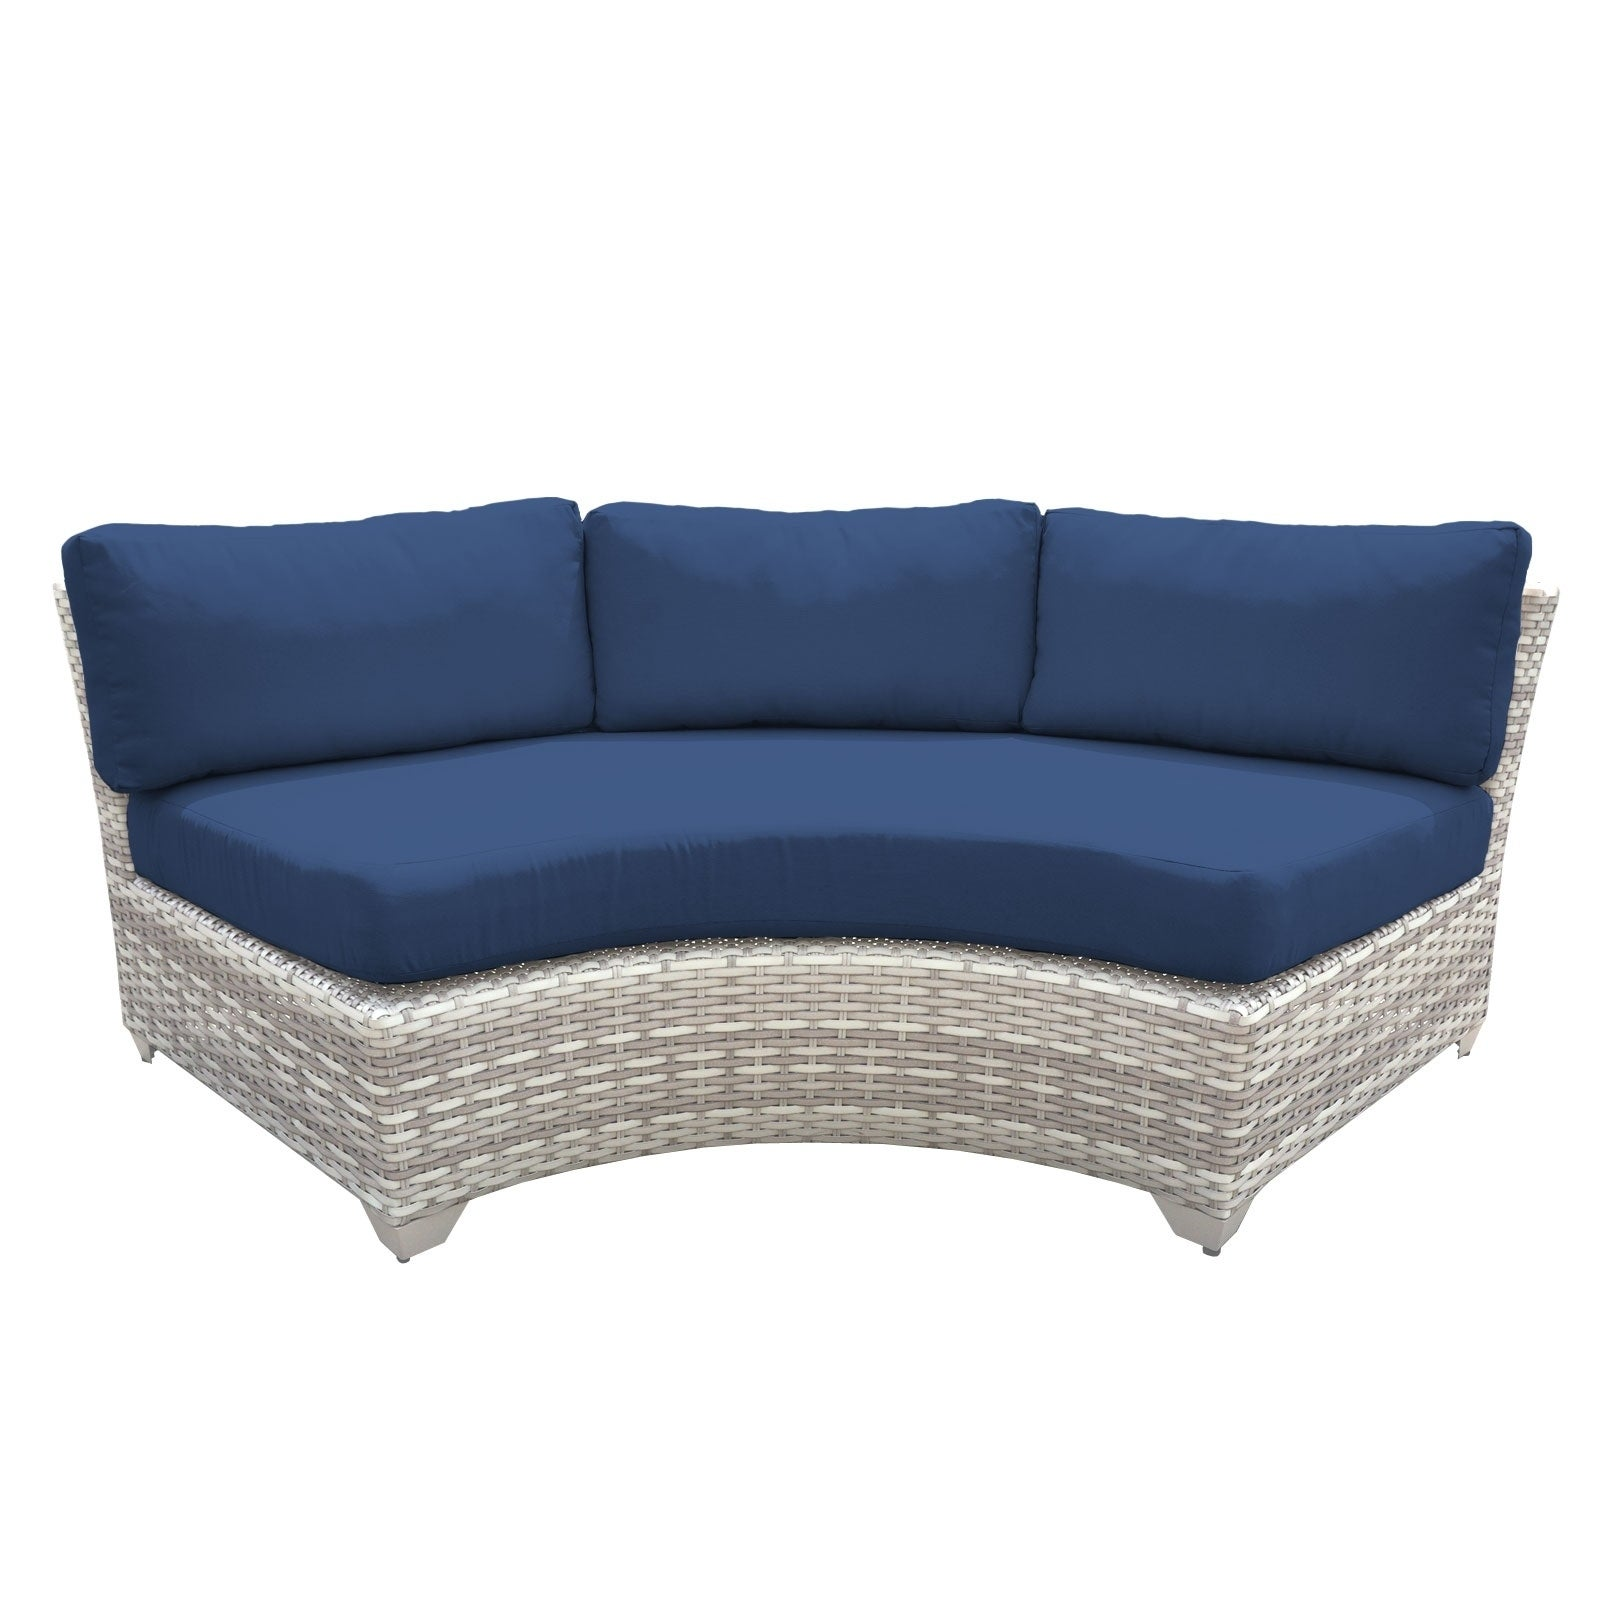 Catamaran Outdoor Patio Curved Wicker Sofa (Set of 2) (Na...